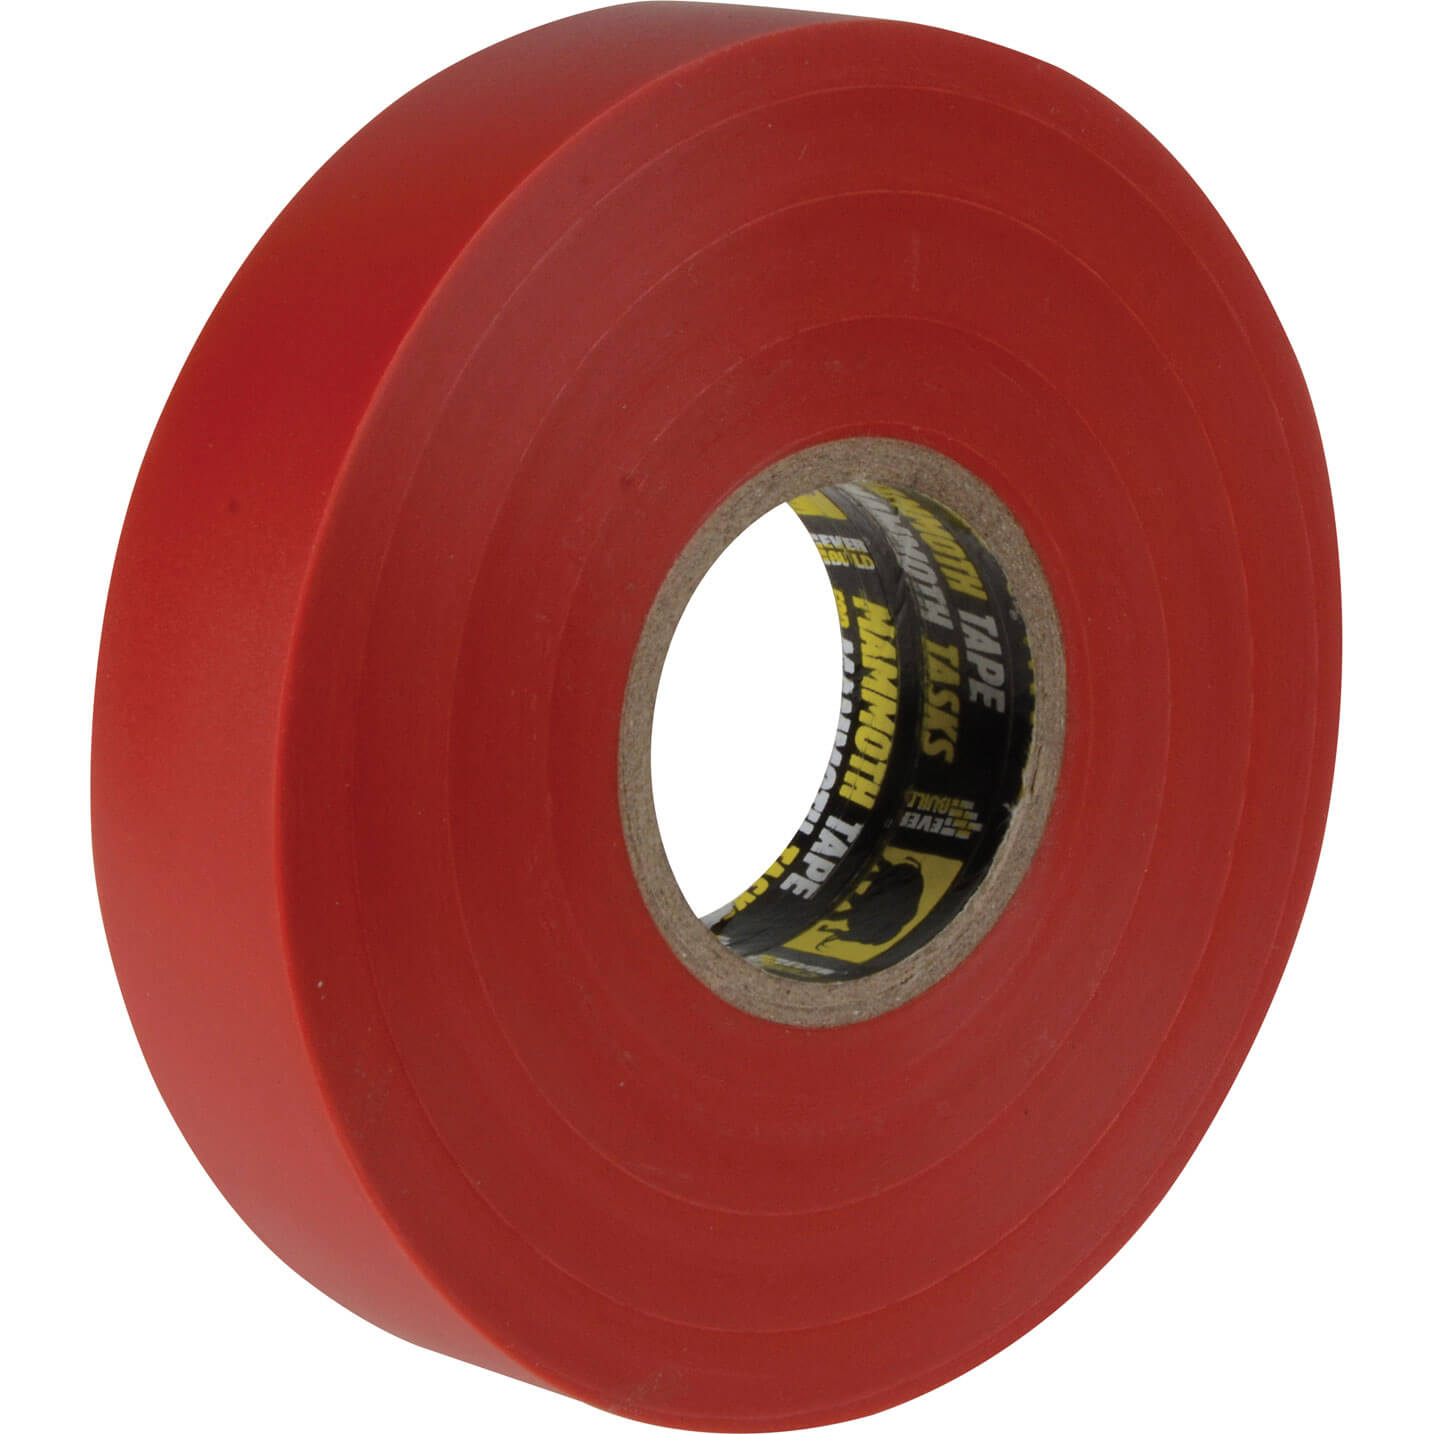 Image of Everbuild Electrical Insulation Tape Red 19mm 33m